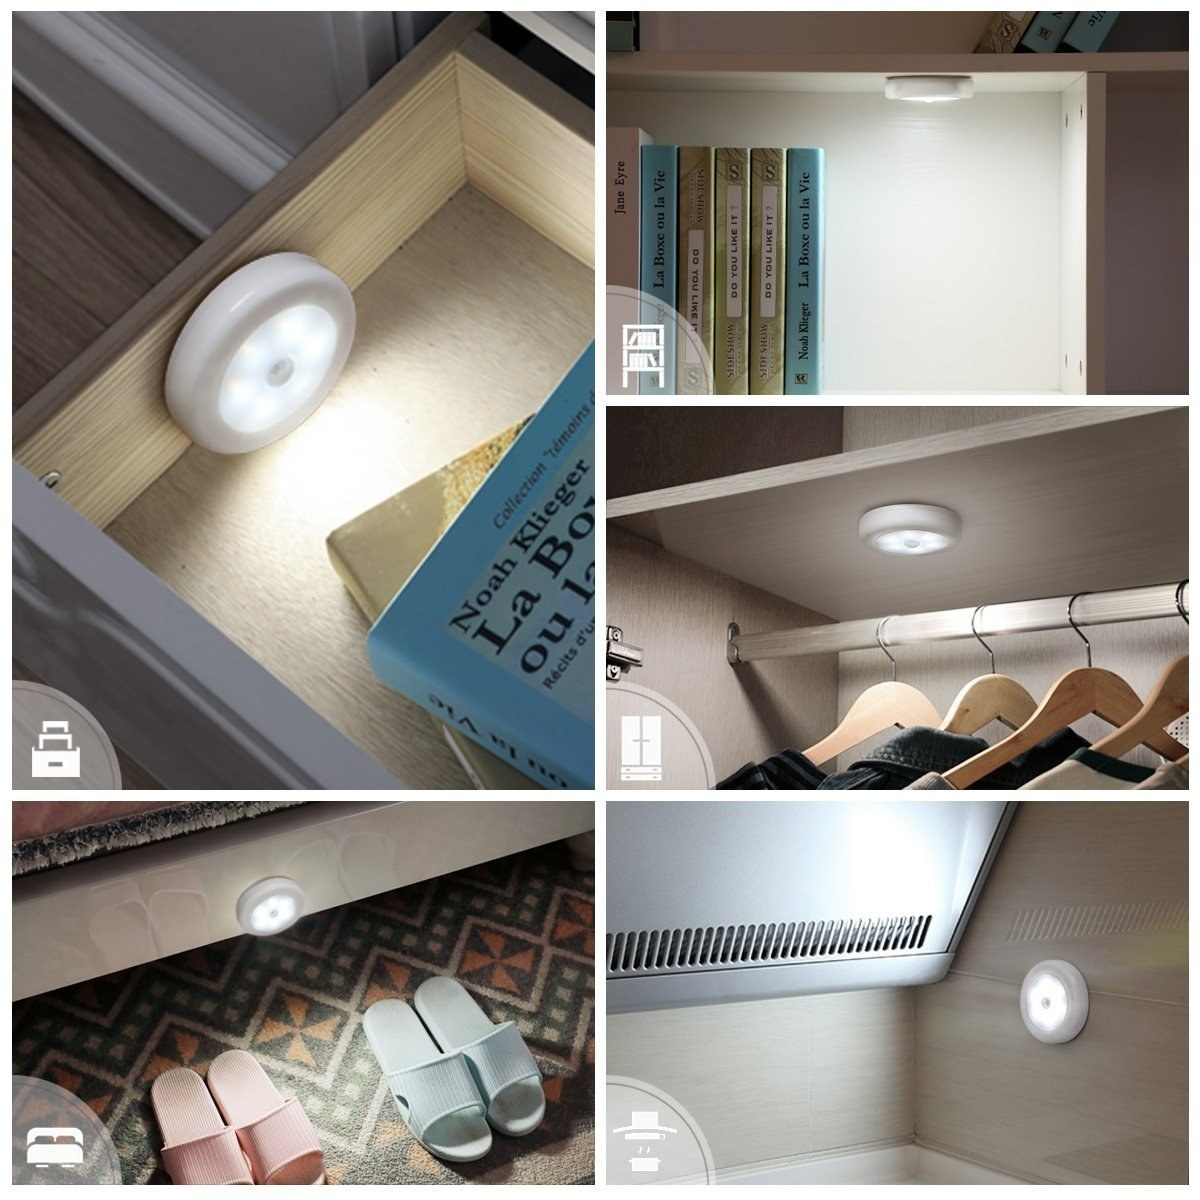 The white stick-on puck light in a drawer, under a bookshelf, under a closet shelf, next to a bed, and on a kitchen wall